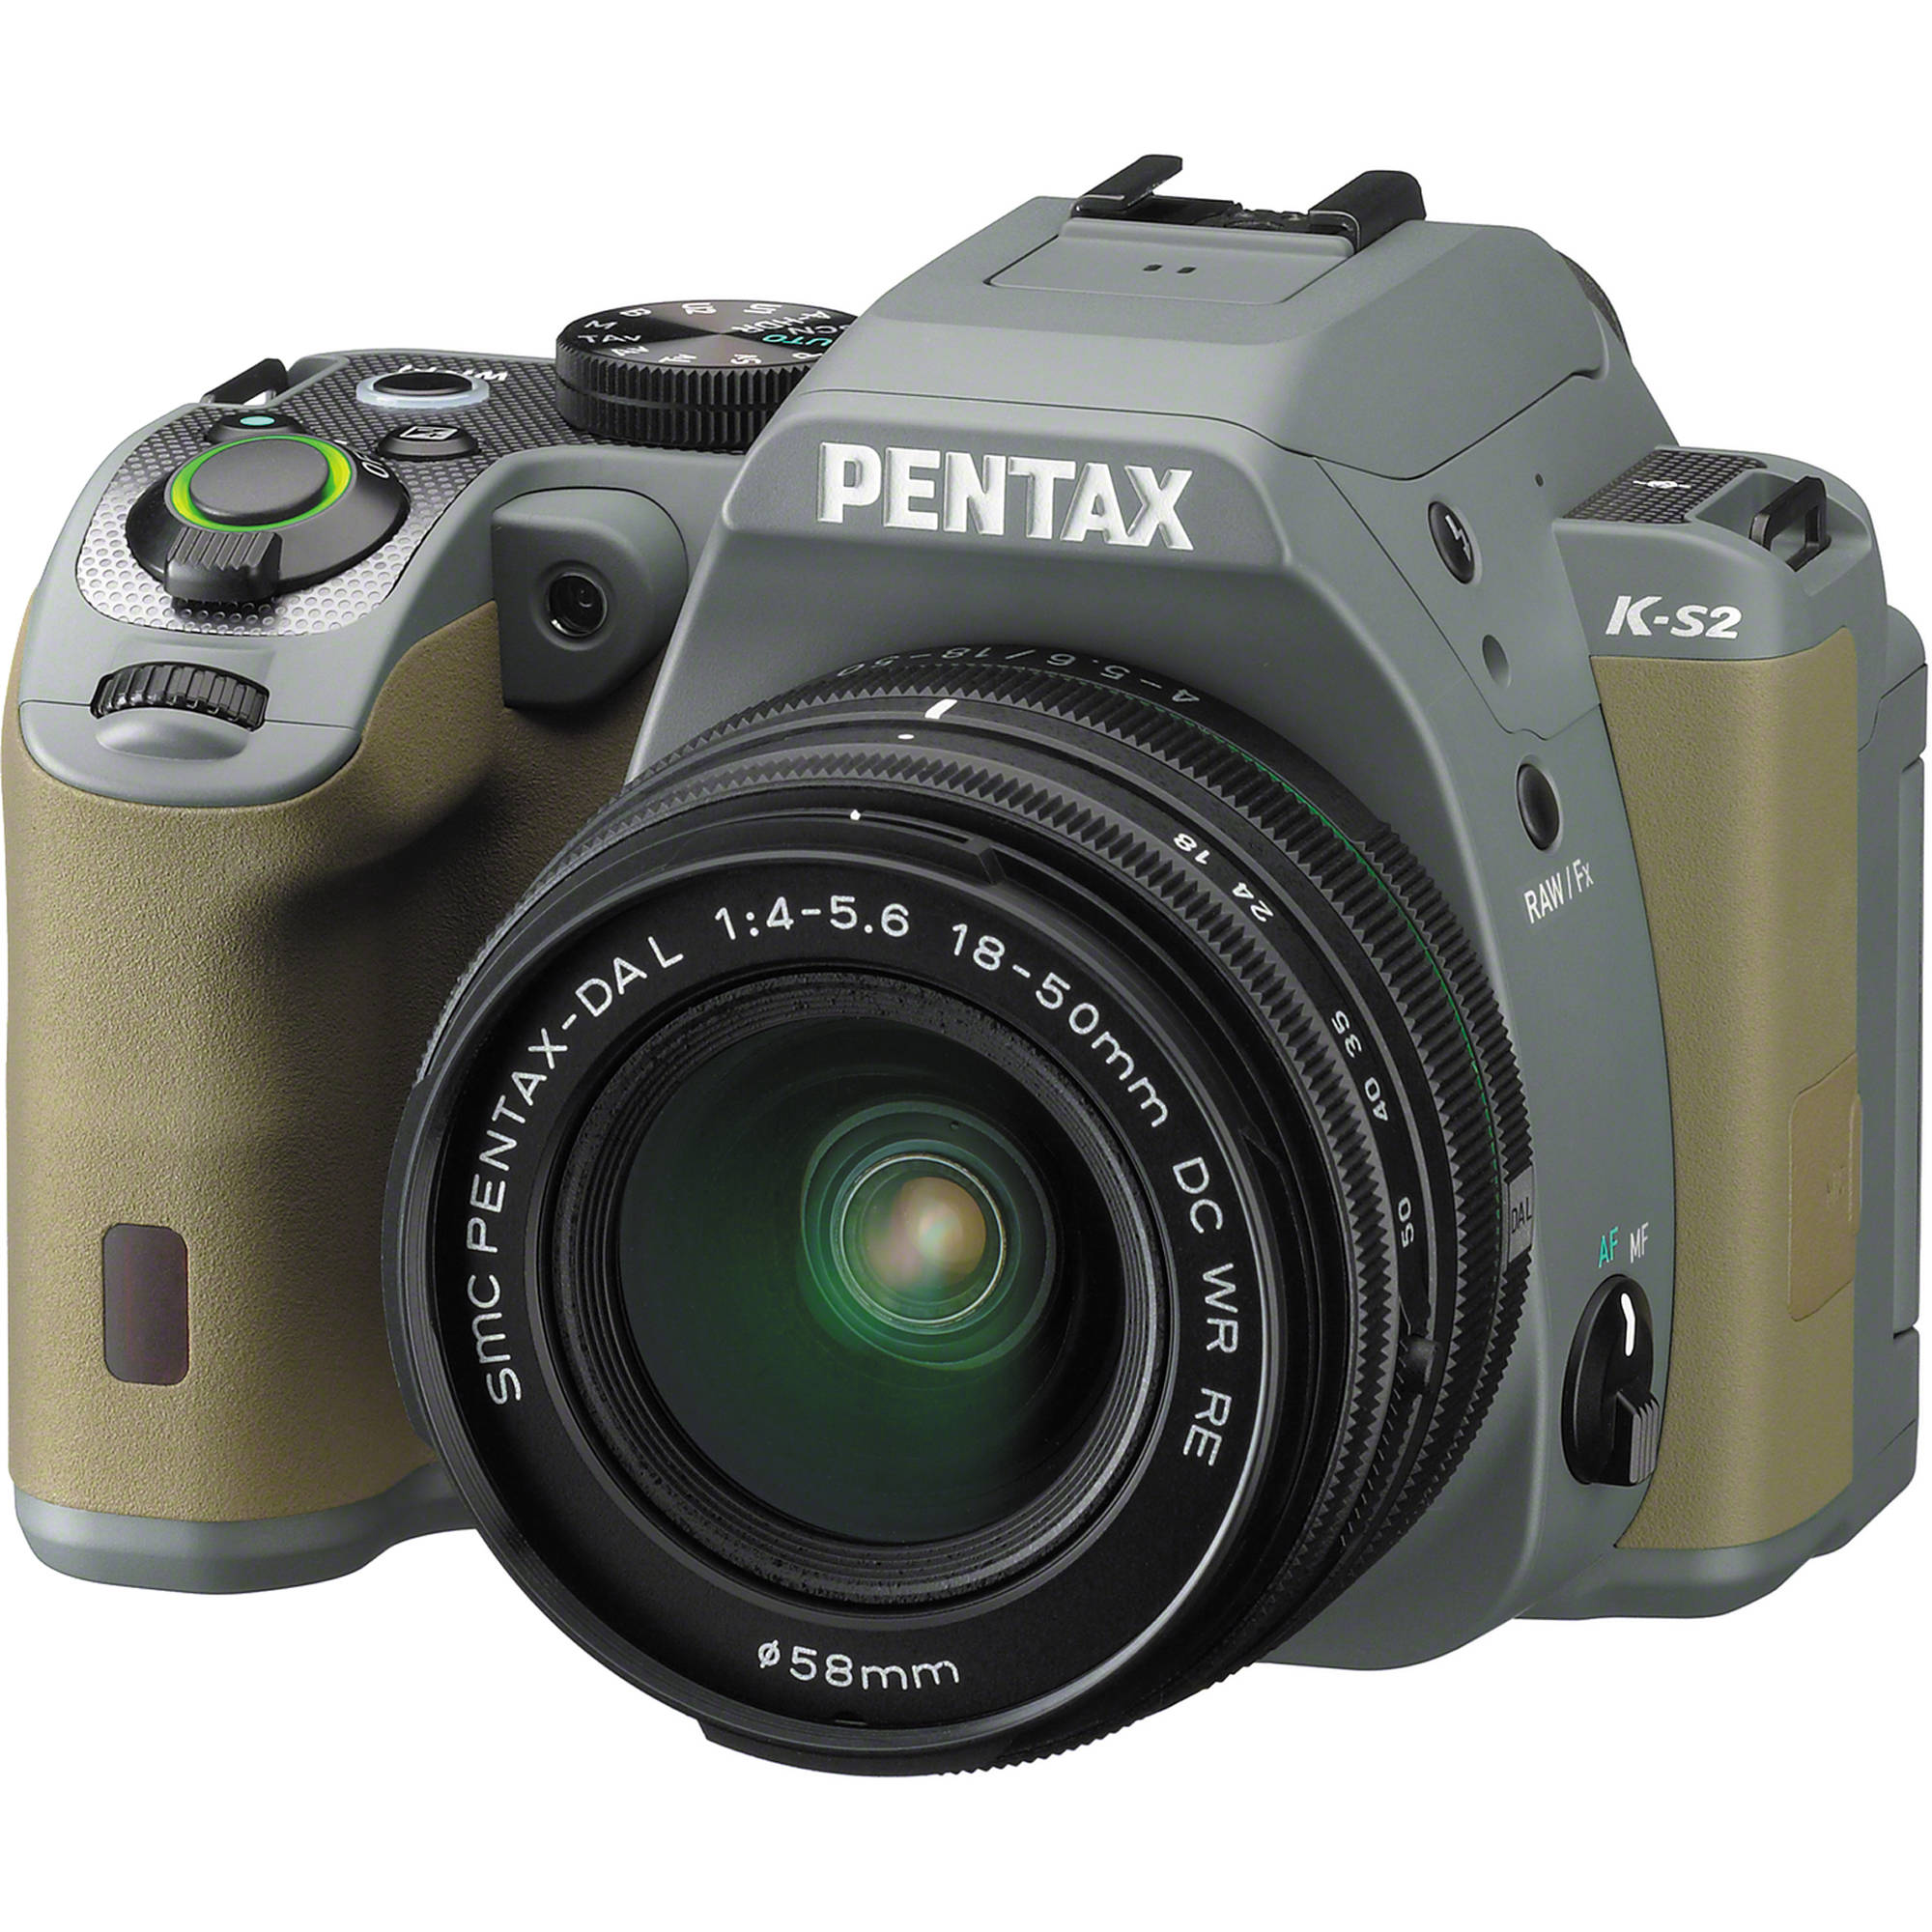 Camera Why Buy A Dslr Camera 9 recommended entry level dslr cameras bh explora pentax k s2 camera with 18 50mm lens